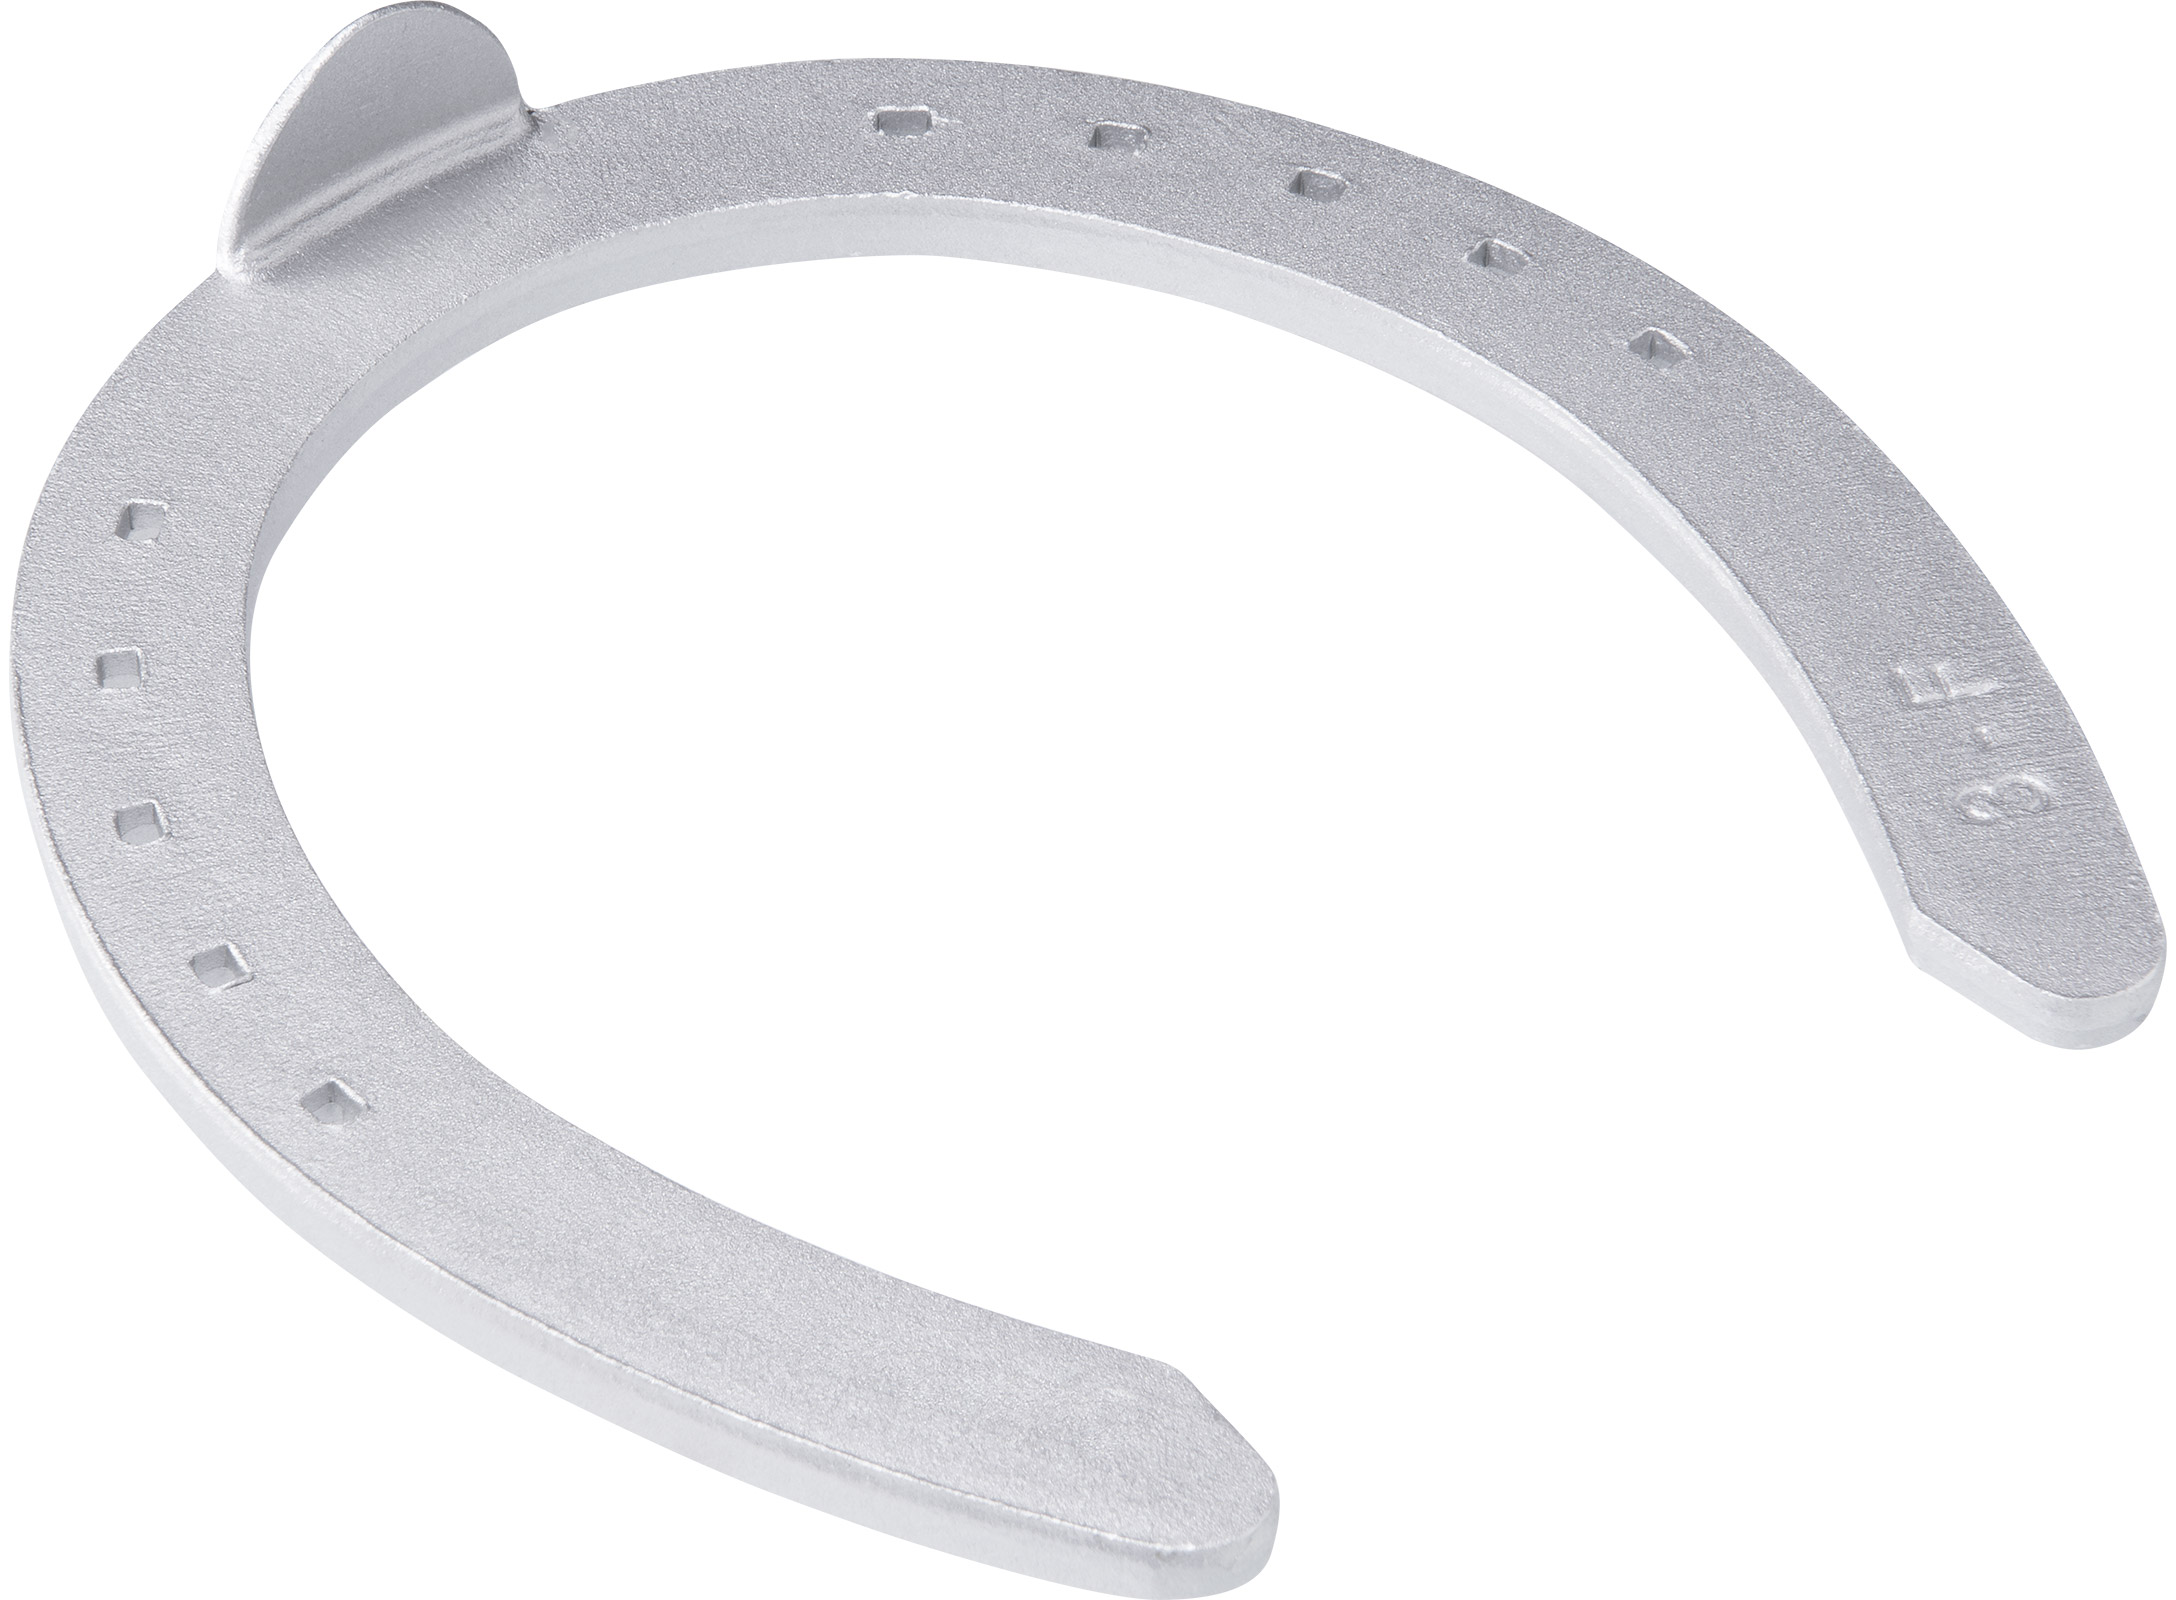 St. Croix Plain Aluminium horseshoe, hoof side view